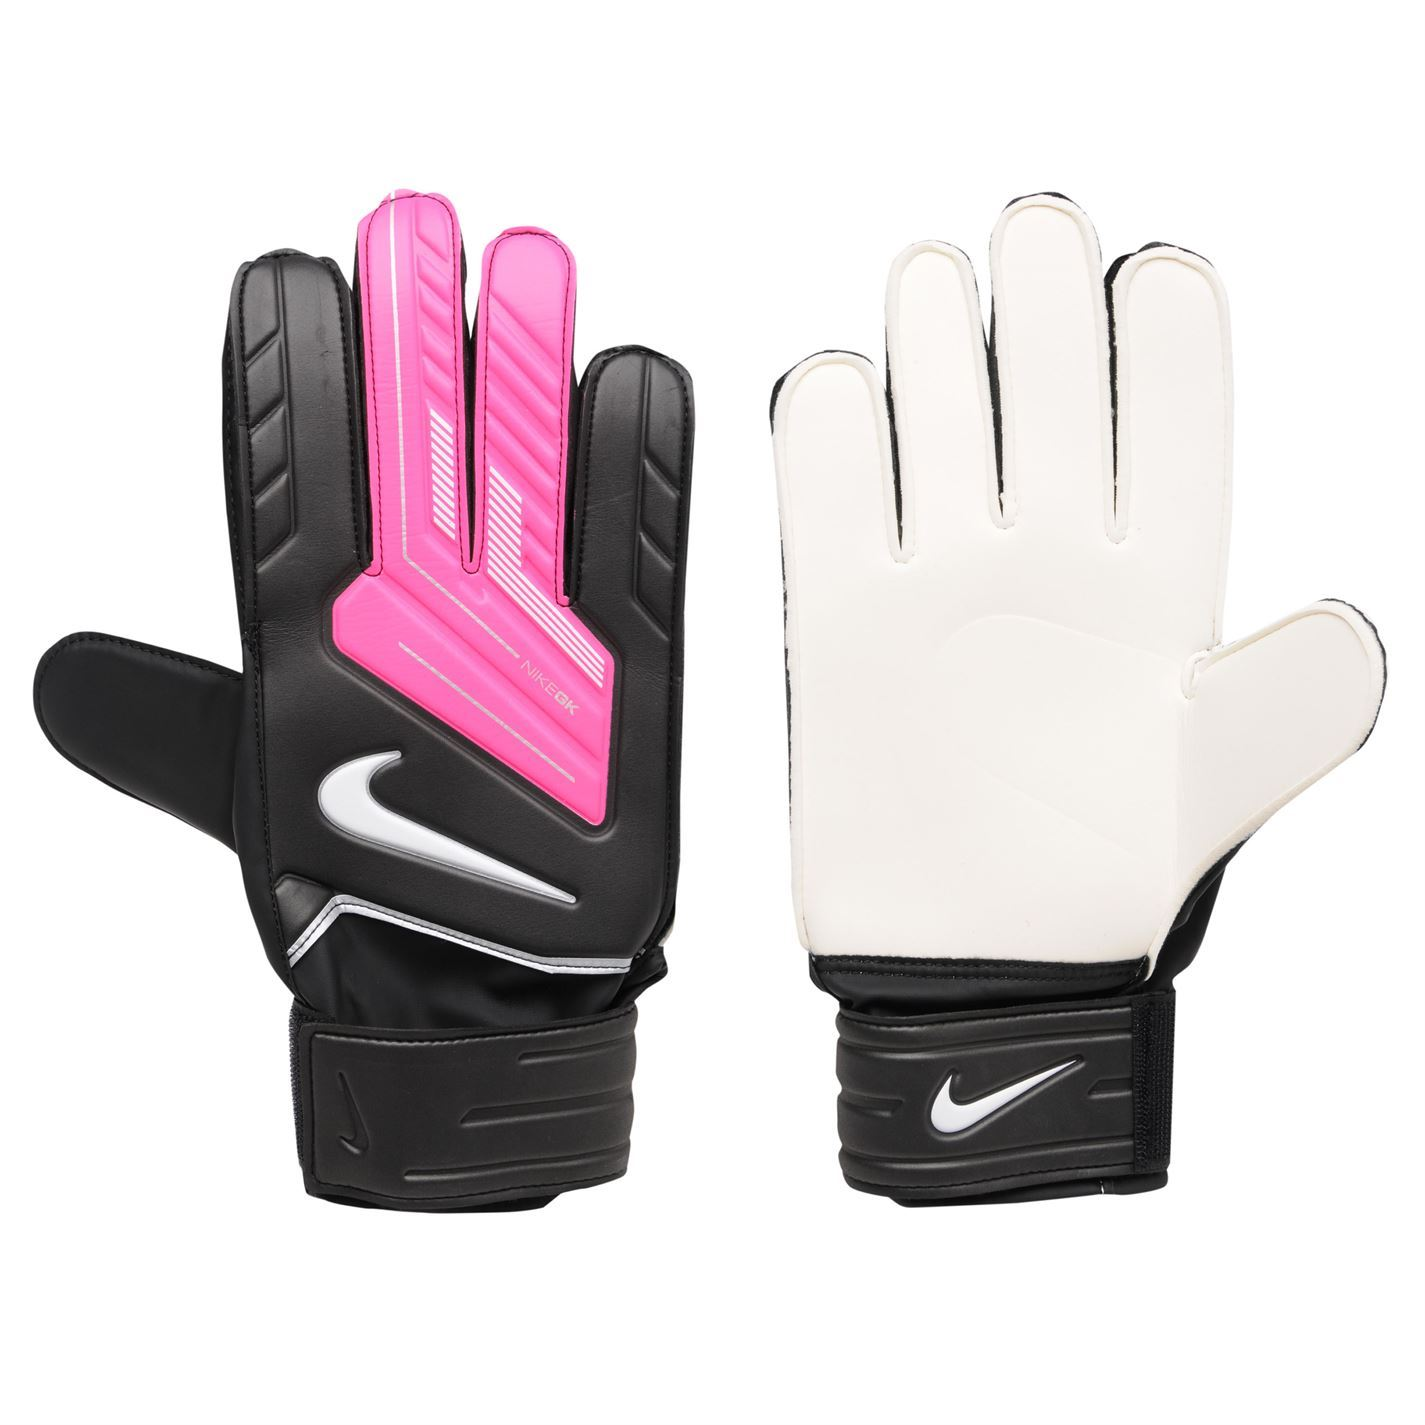 Black nike goalkeeper gloves - Nike Match Goalkeeper Gloves Black Pink Whit Football Soccer